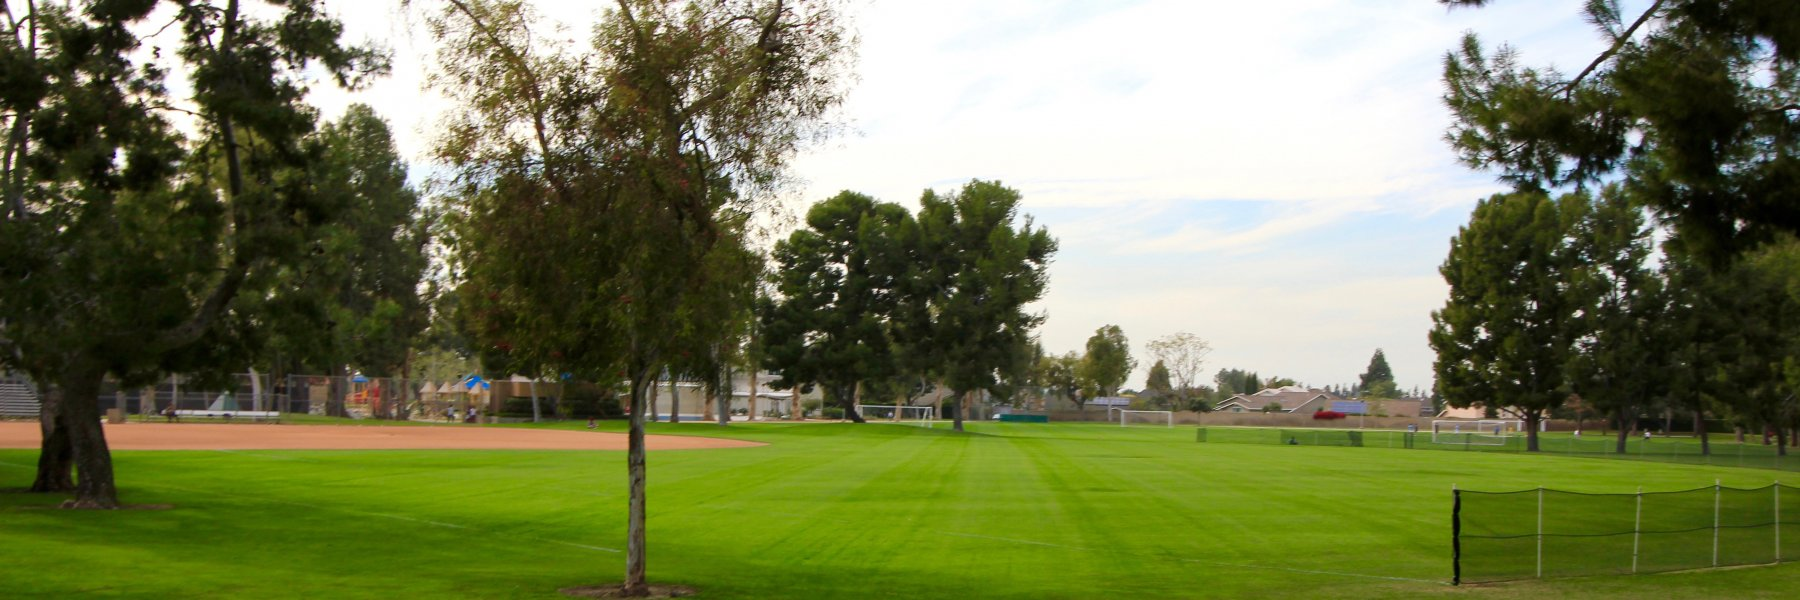 Northwood is a community of homes in Irvine California